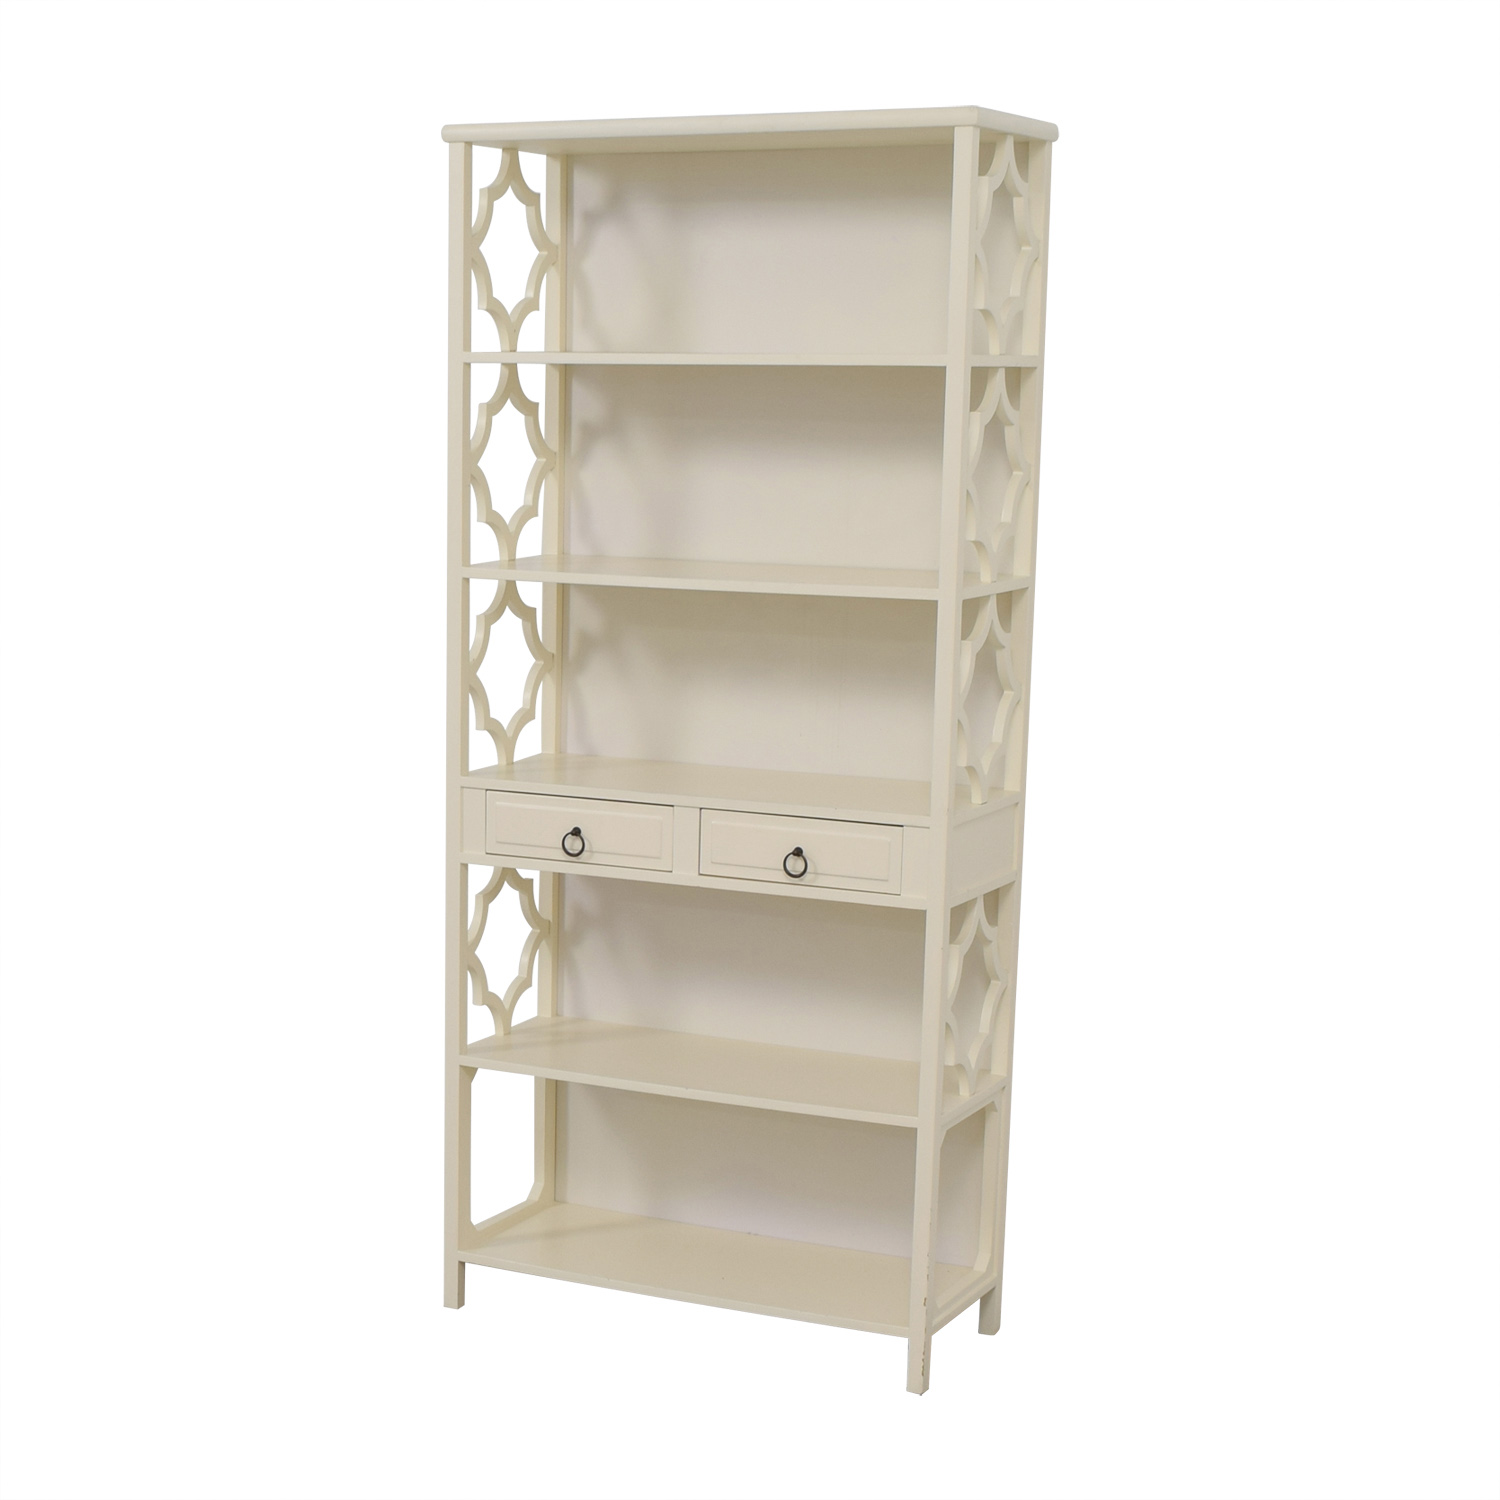 Serena & Lily Serena & Lily Hollywood Regency White Bookcase price